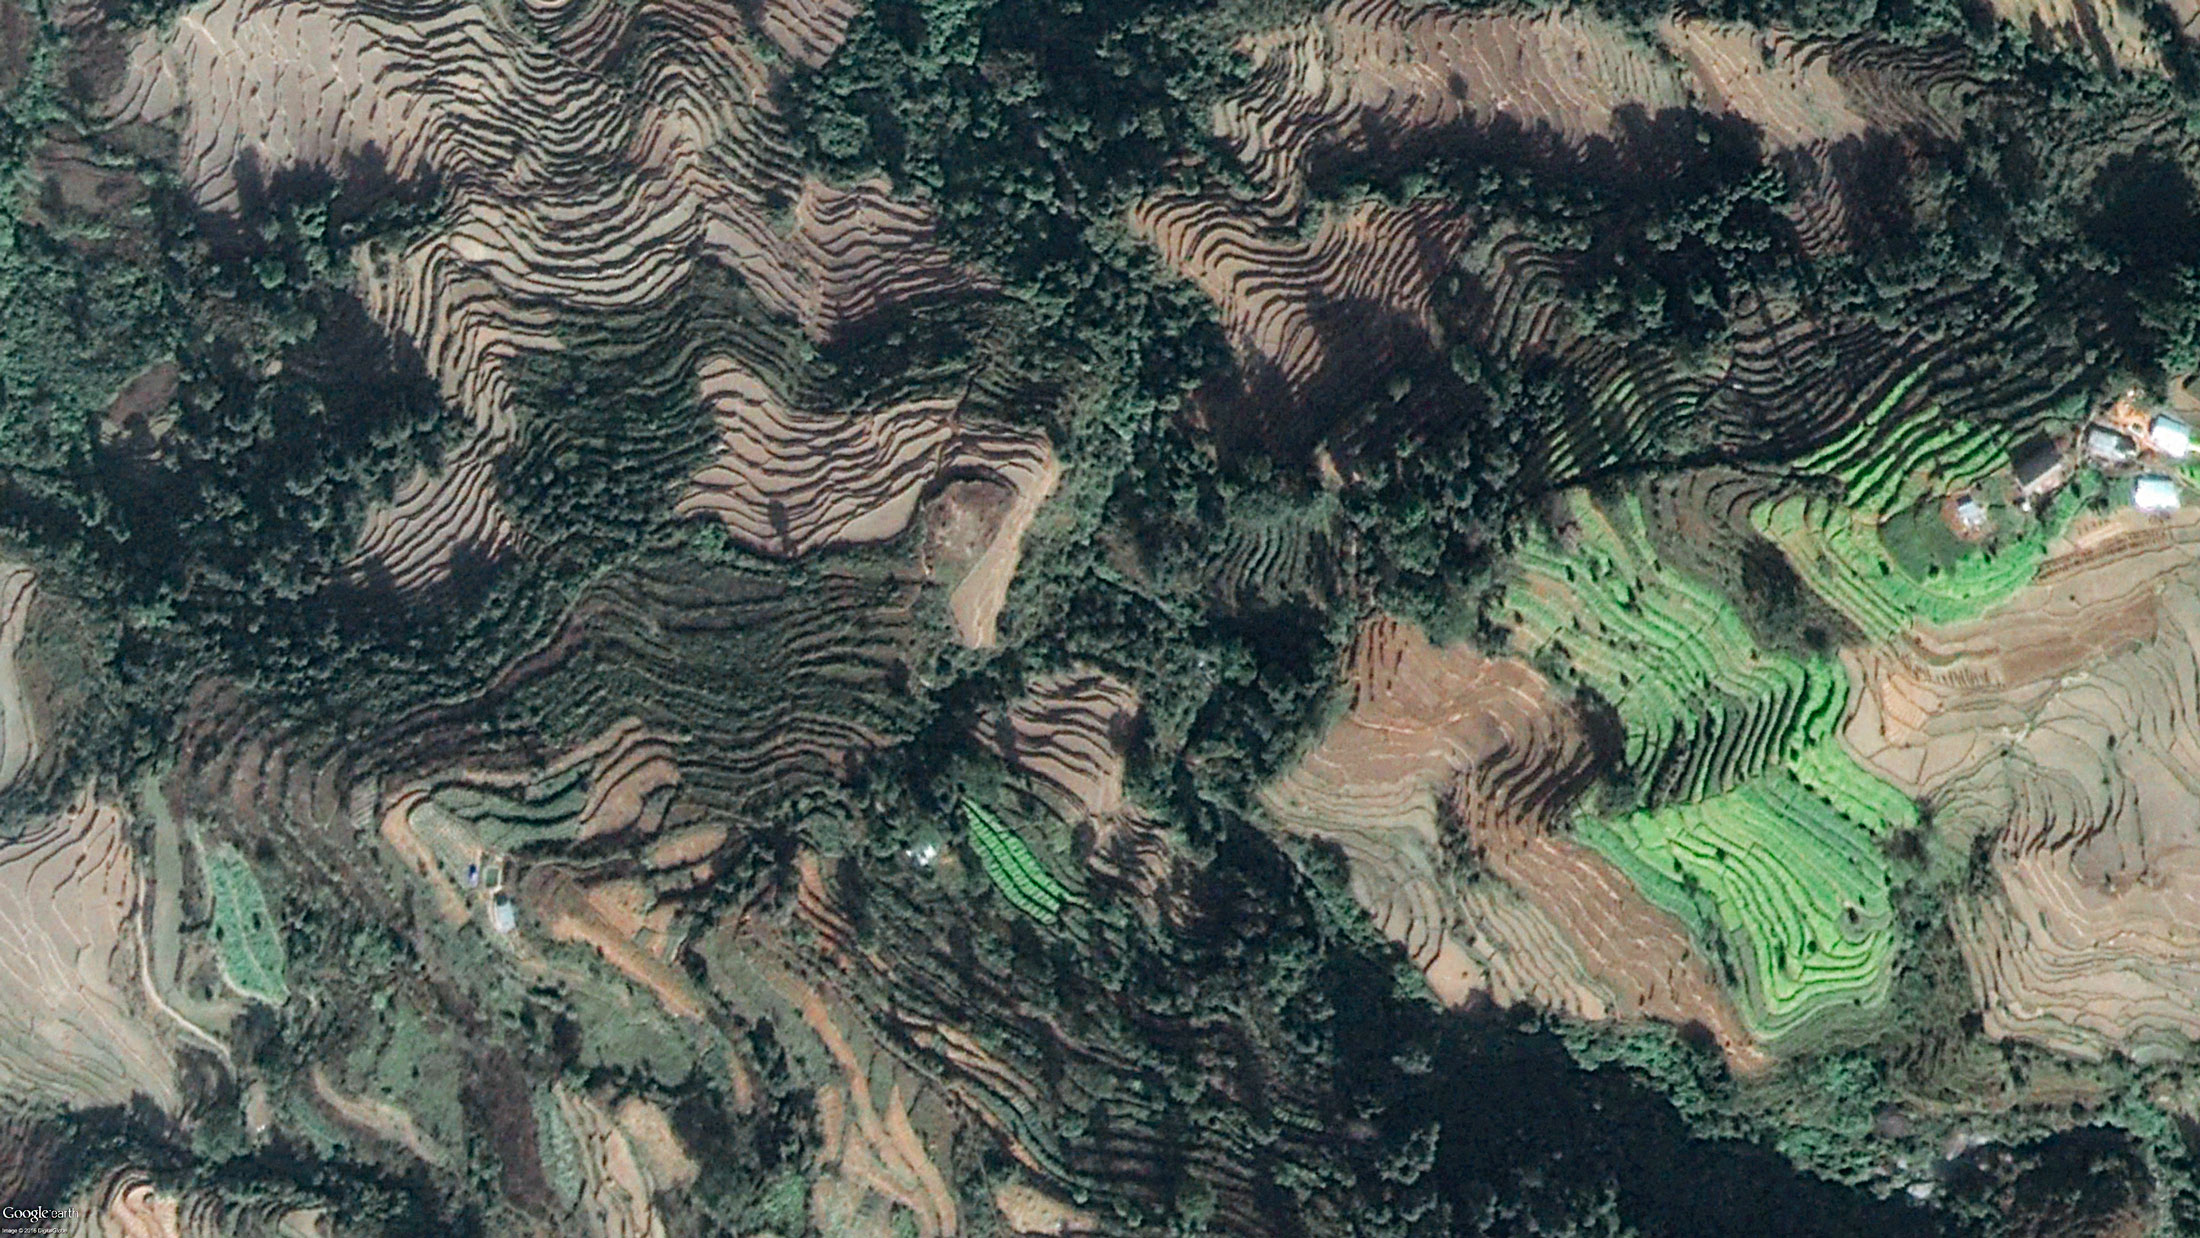 Top view of rice terraces in Nagarkot, in the Kathmandu valley, Nepal.  The Global Agricultural Research Partnership, CGIAR, supports climate-smart agricultural practices in Nepal, to build adaptive capacity and resilience in managing climate change.